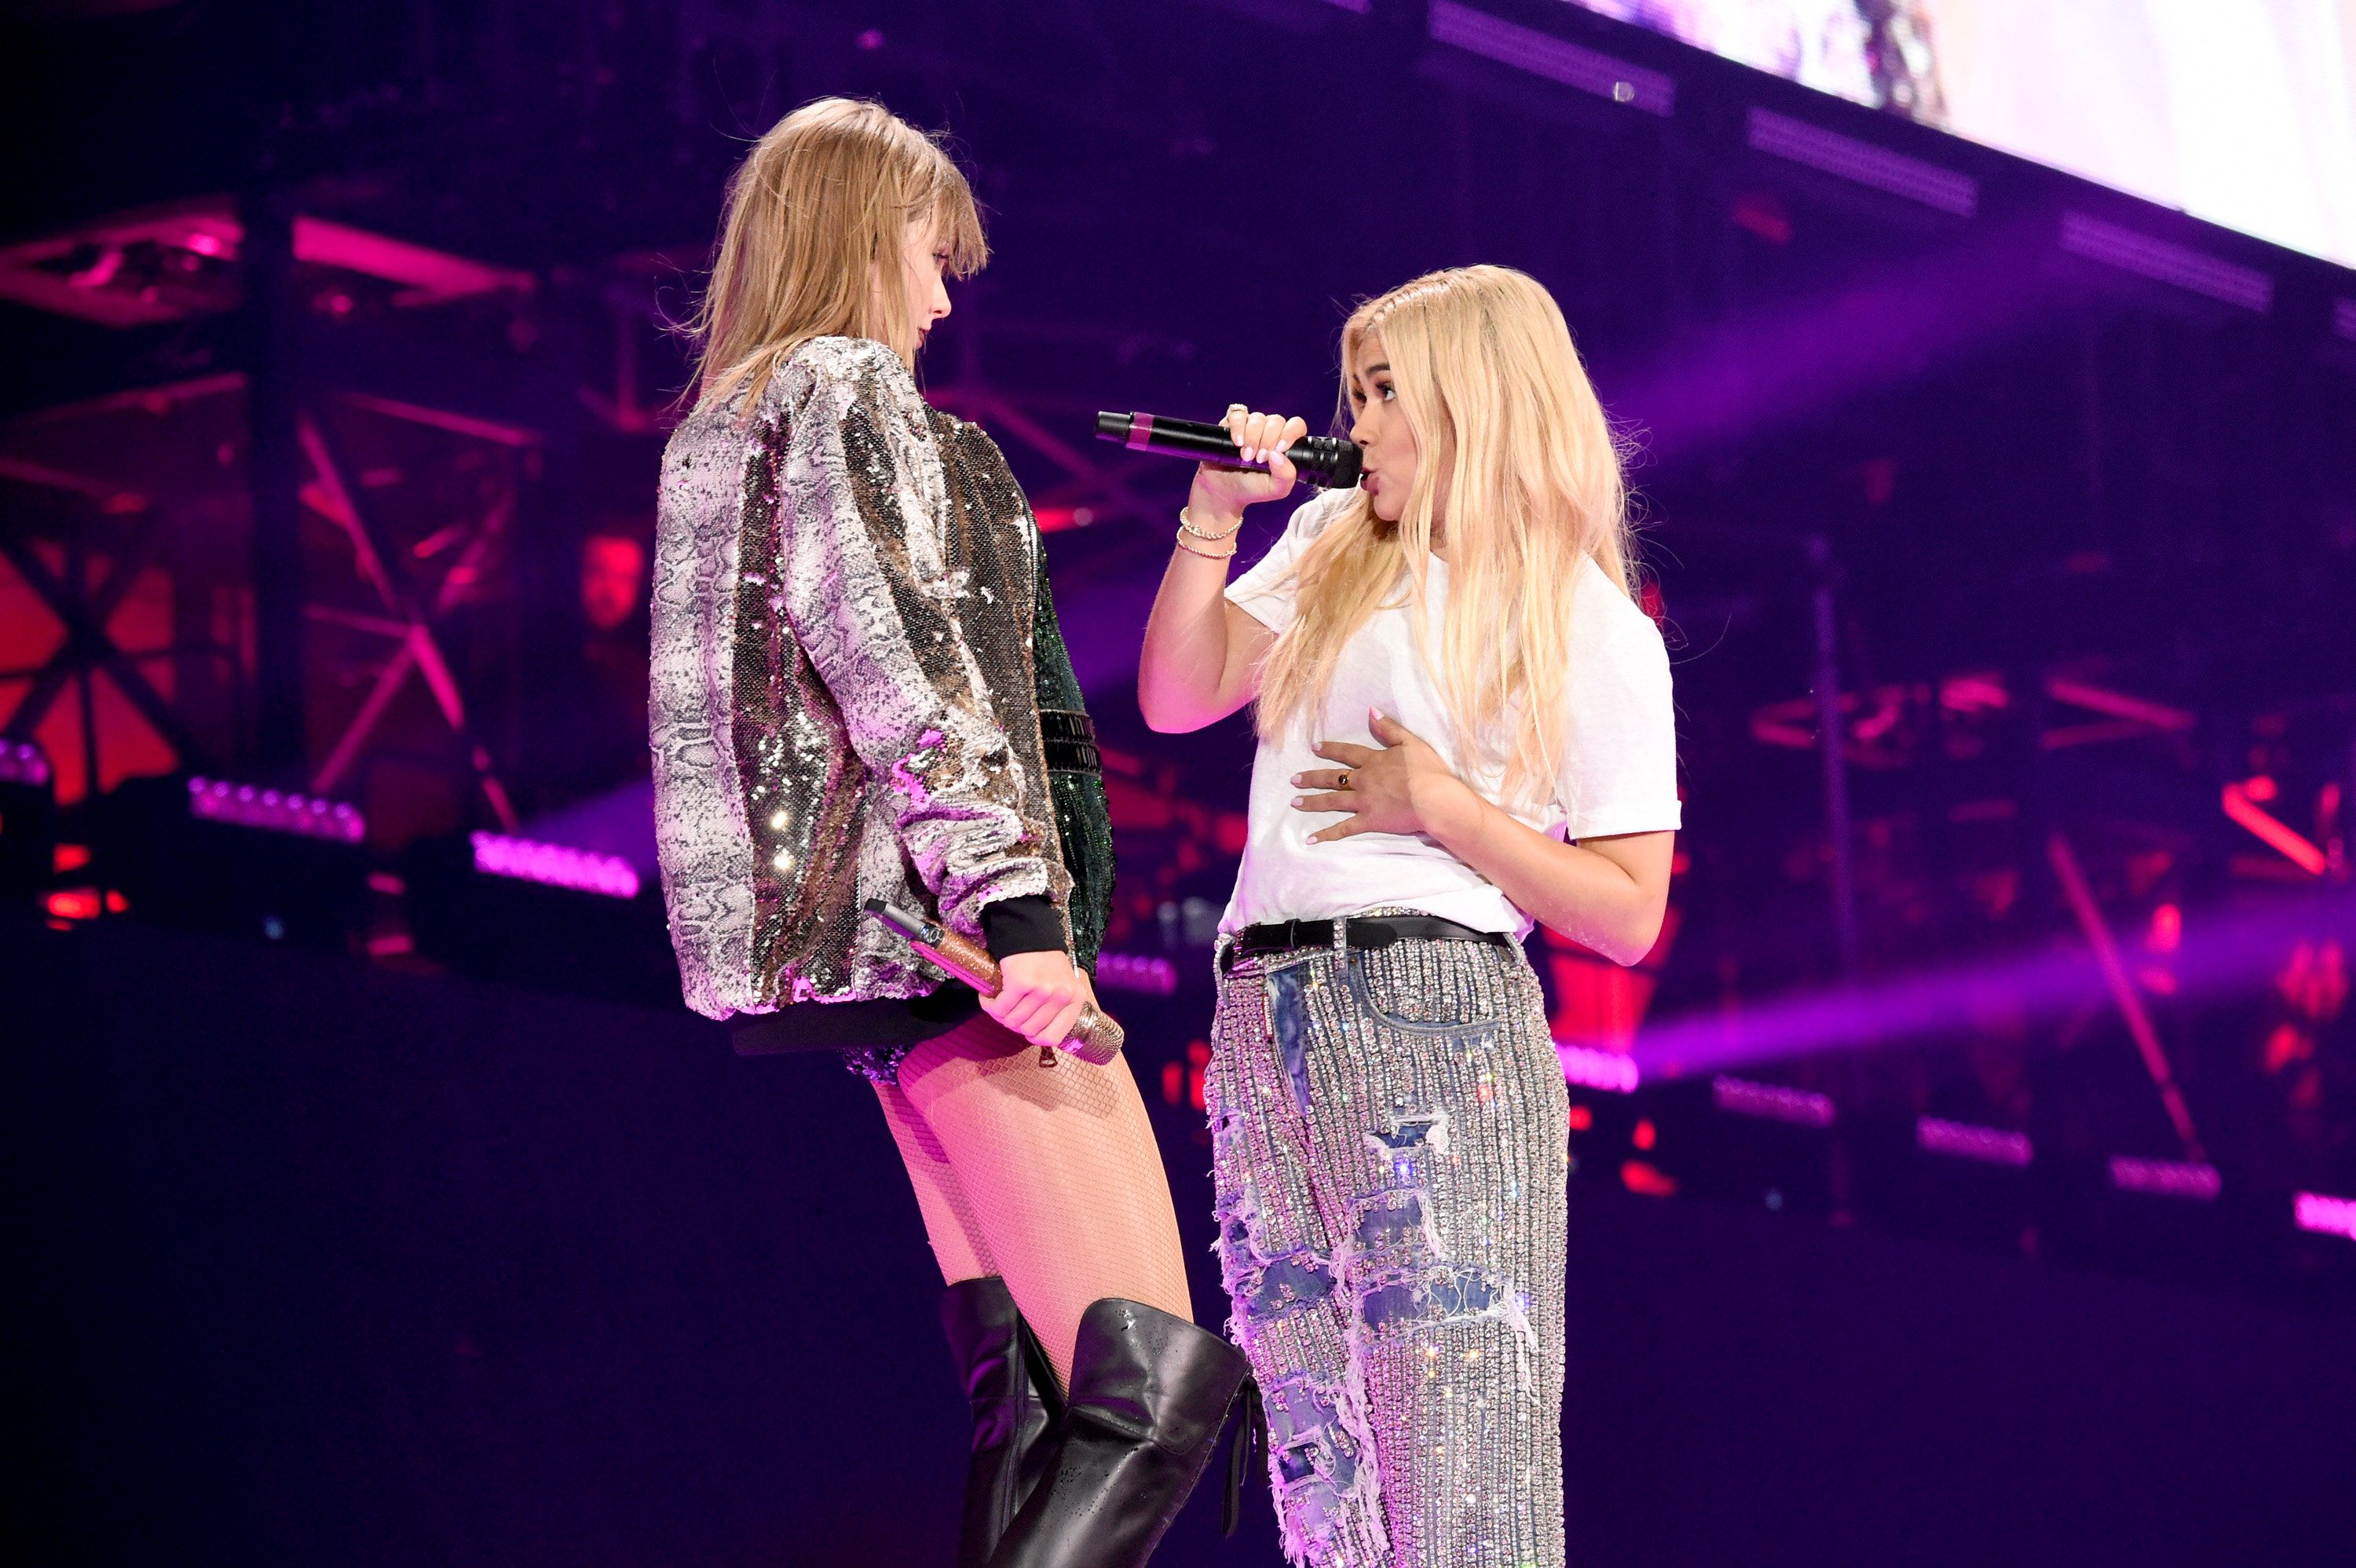 FOXBOROUGH, MA - JULY 26:  Taylor Swift and Hayley Kiyoko perform onstage during the Taylor Swift reputation Stadium Tour at Gillette Stadium on July 26, 2018 in Foxborough, Massachusetts.  (Photo by Kevin Mazur/TAS18/Getty Images for TAS)